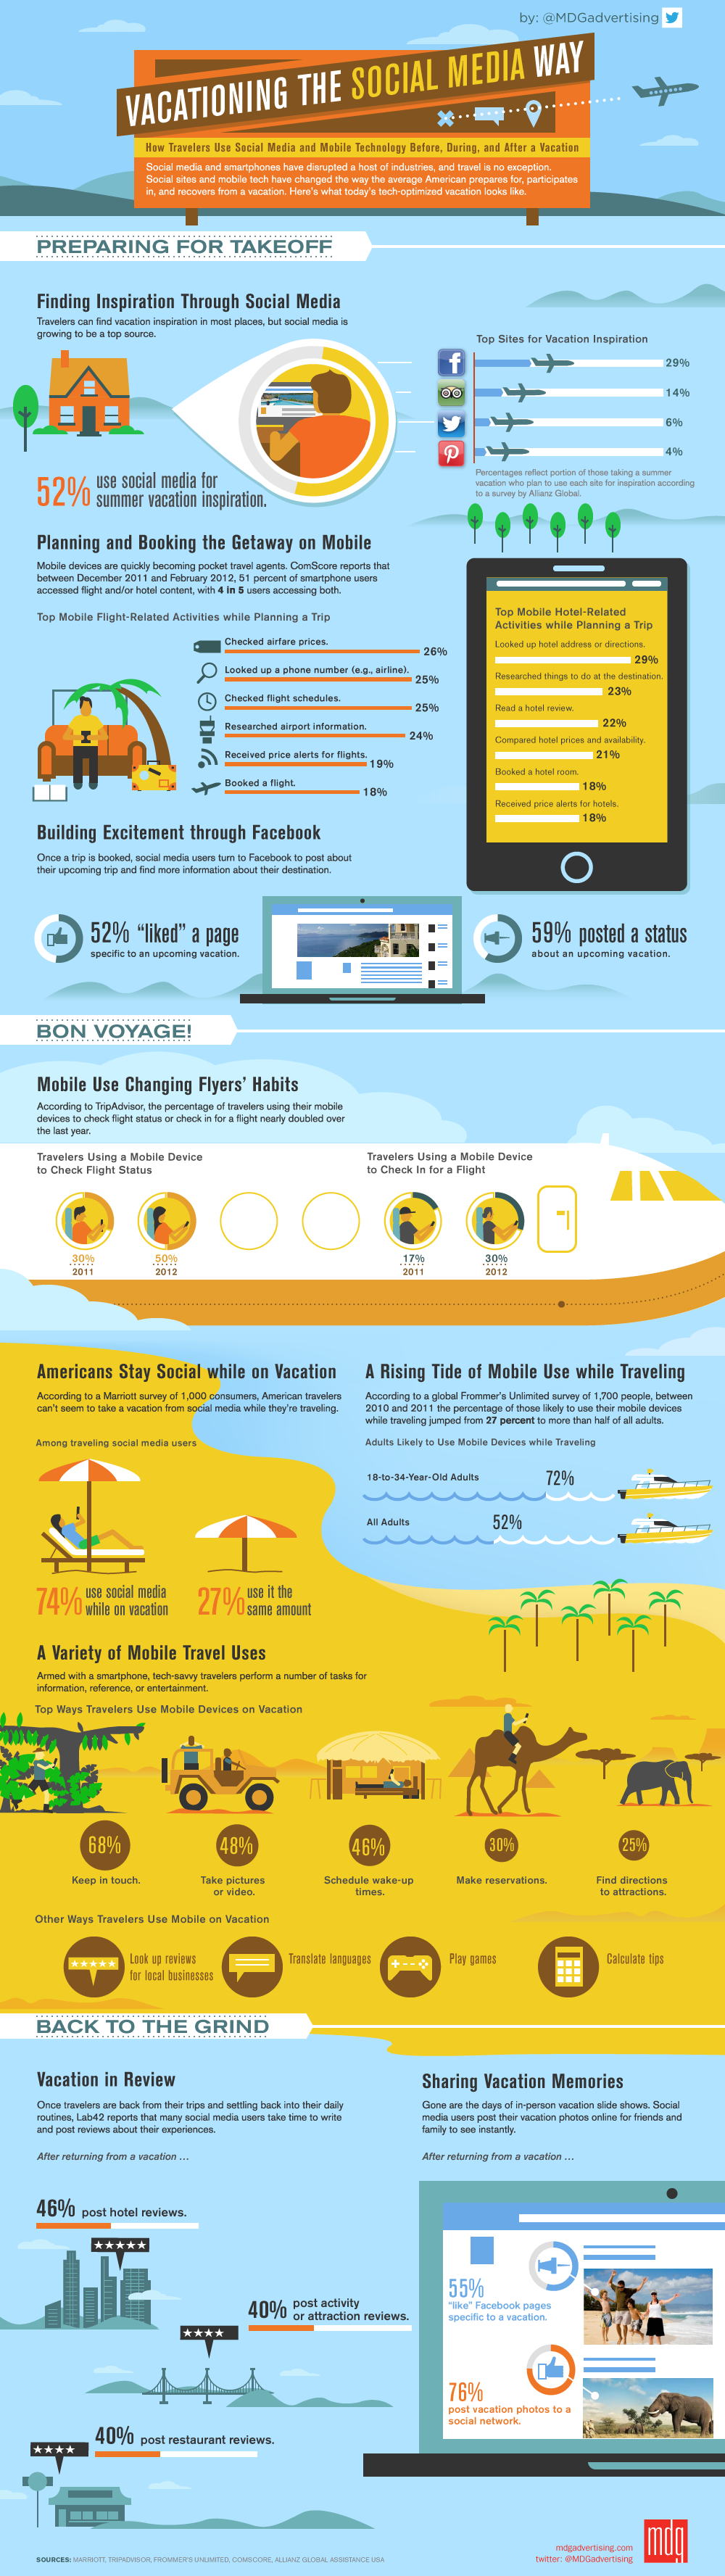 How Social Media & Mobile Change How We Travel [Infographic] image Vacationing Social Media Way 1000px